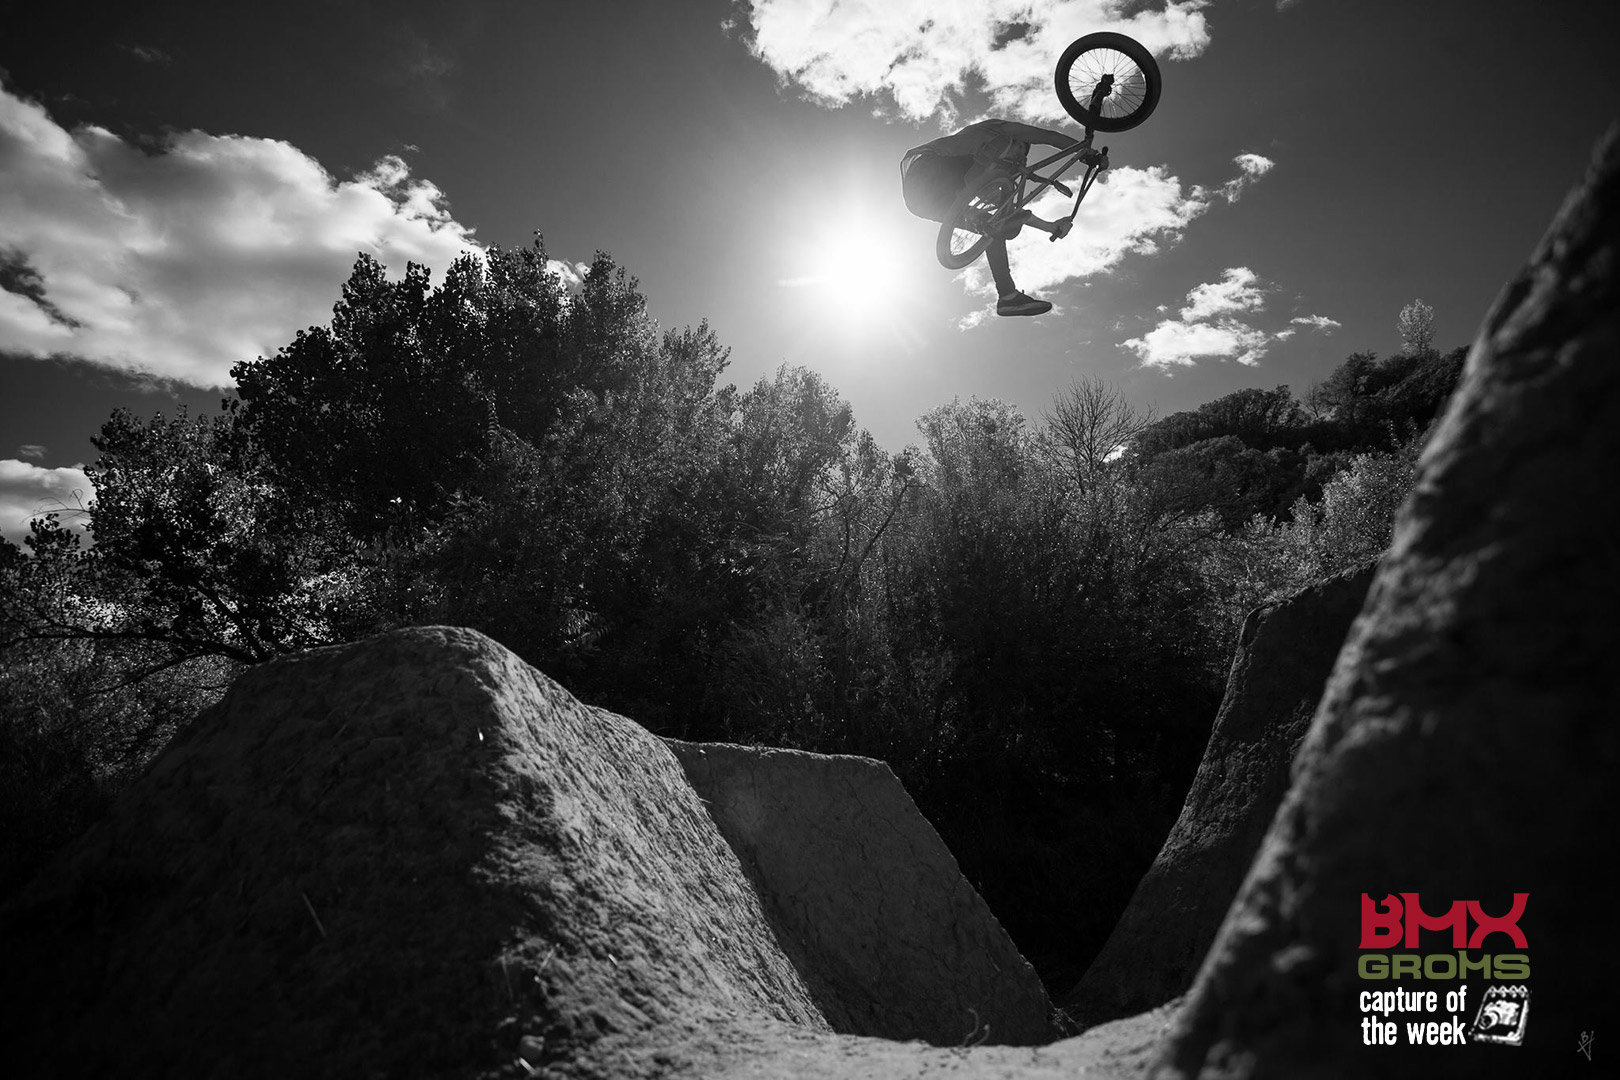 Caden Roberts 1 footed euro table - bmx groms picture of the week.